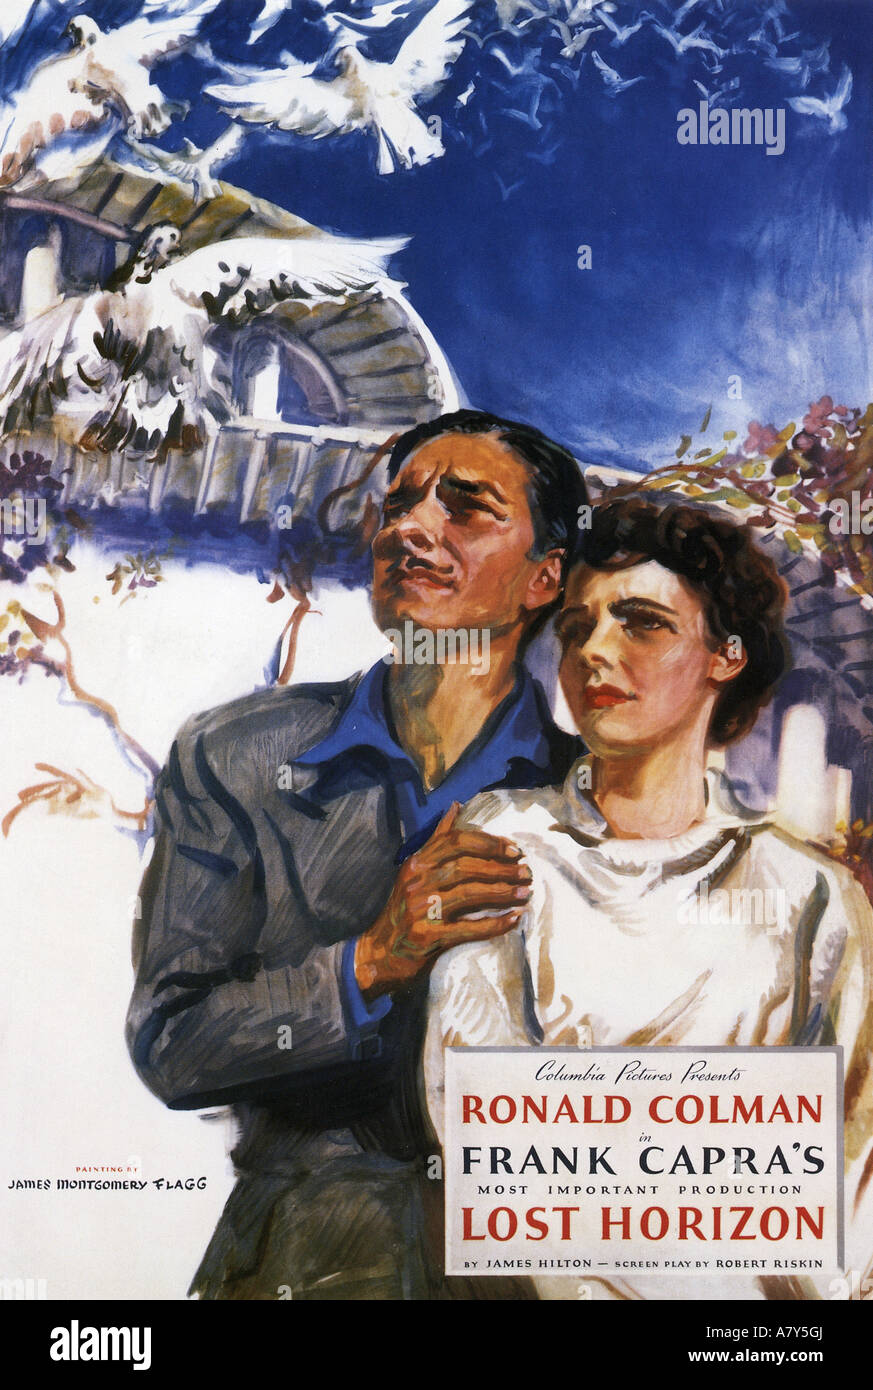 LOST HORIZON poster for 1937 Columbia film with Ronald Coleman - Stock Image